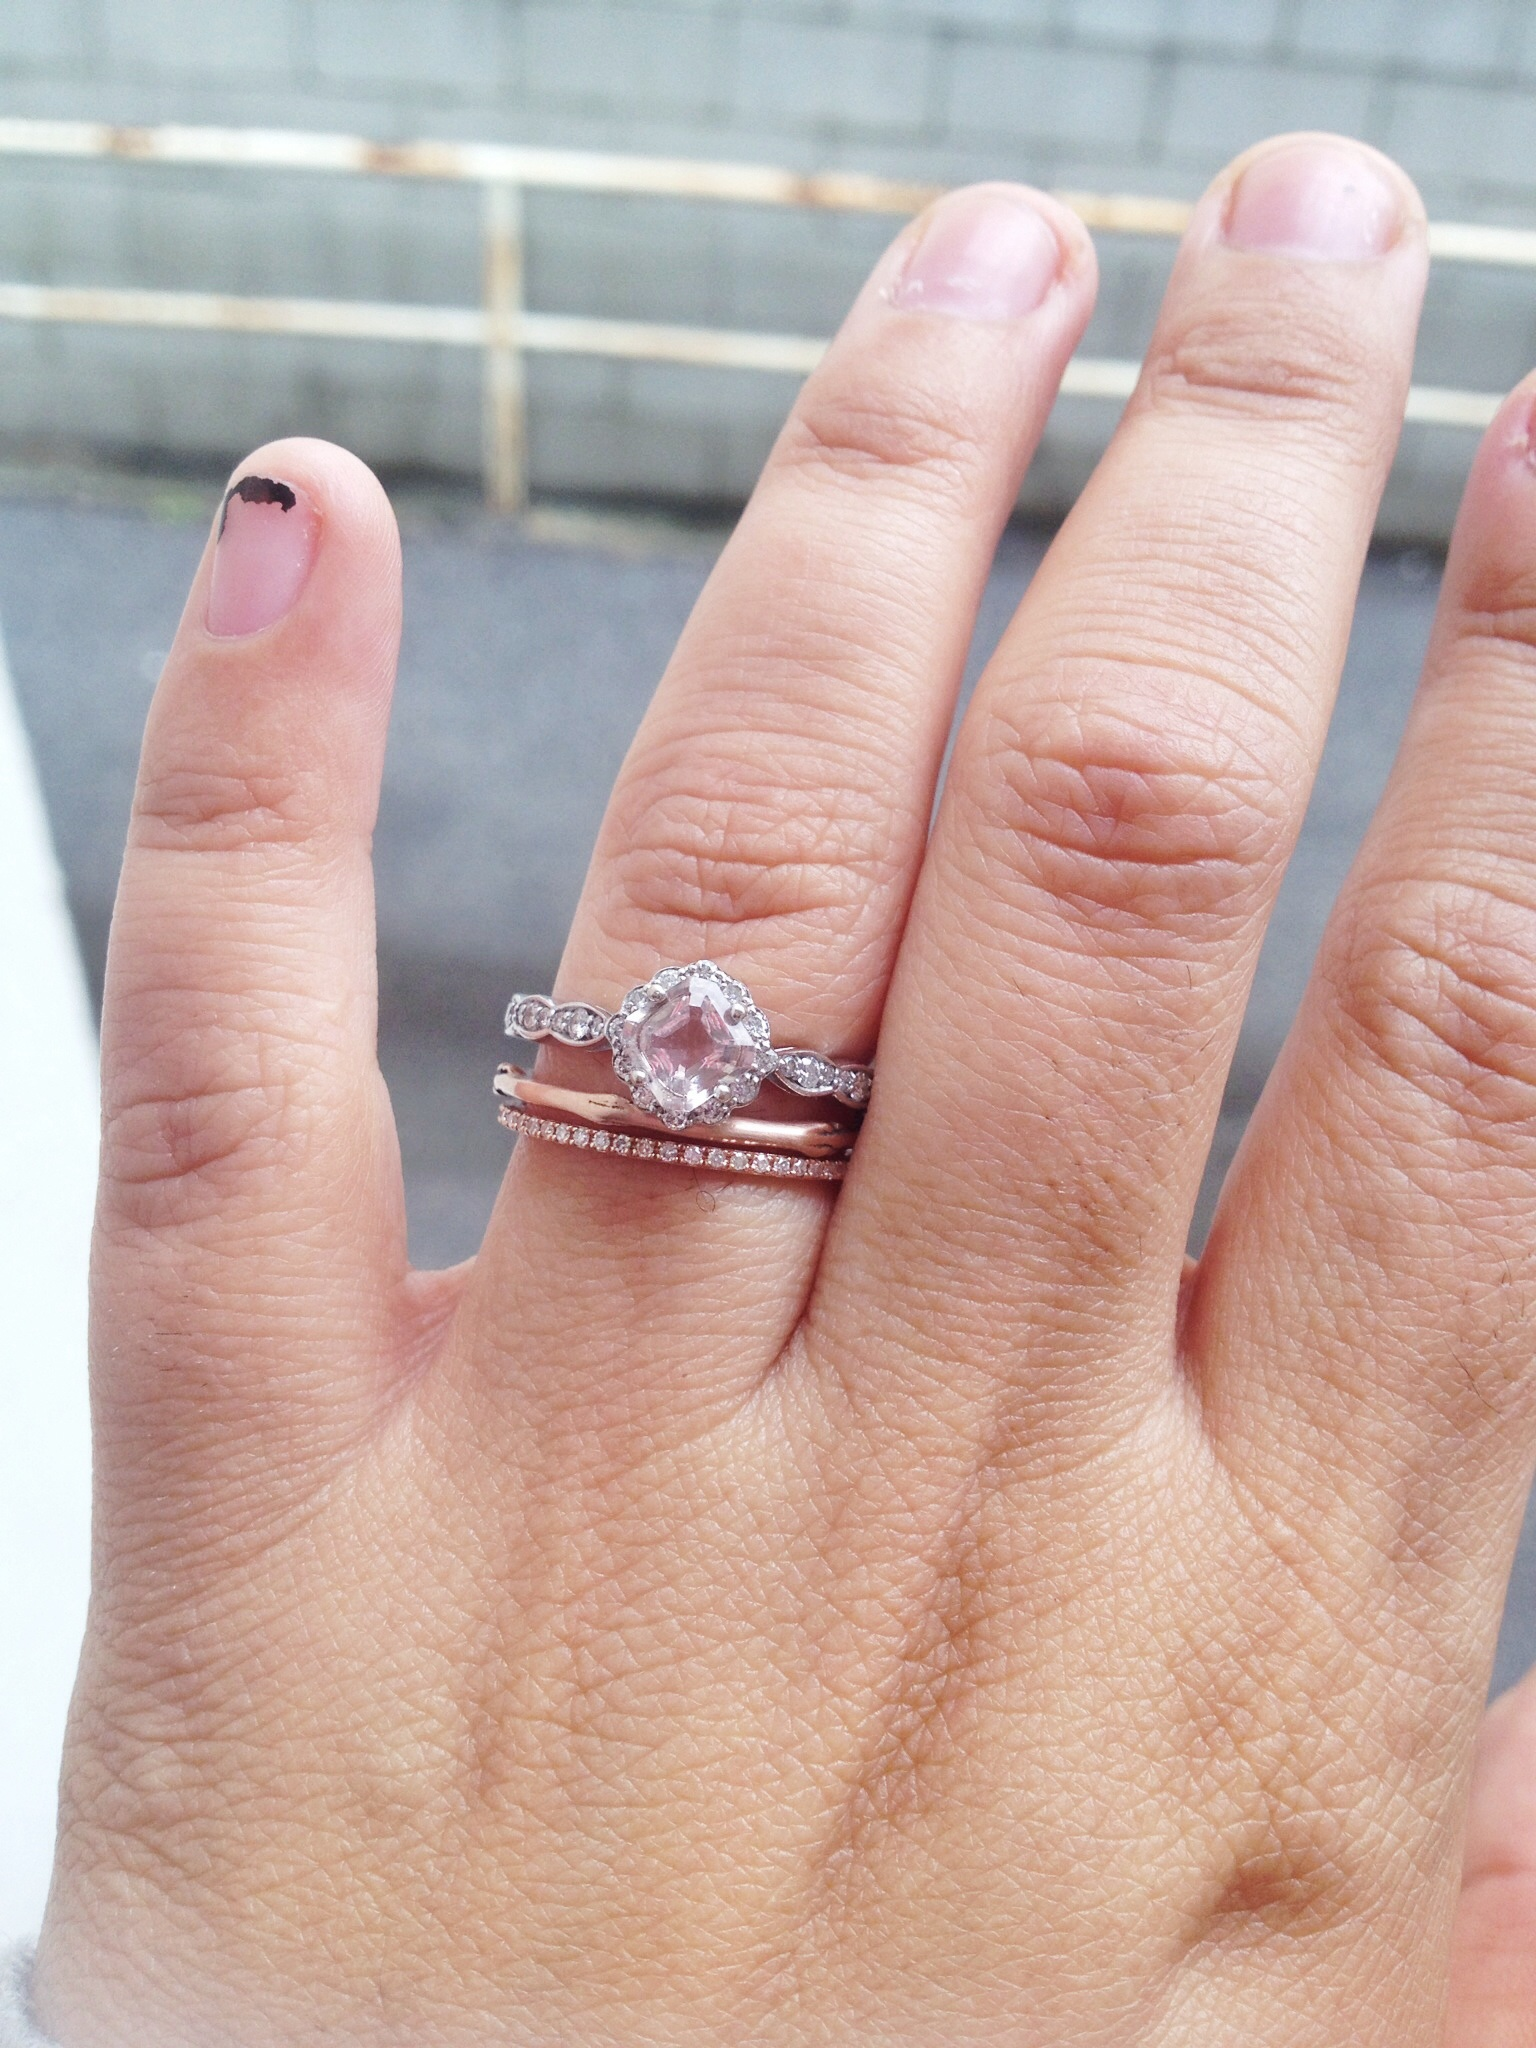 show me your ring guards ring enhancers stacking rings wedding ring wrap Post 4